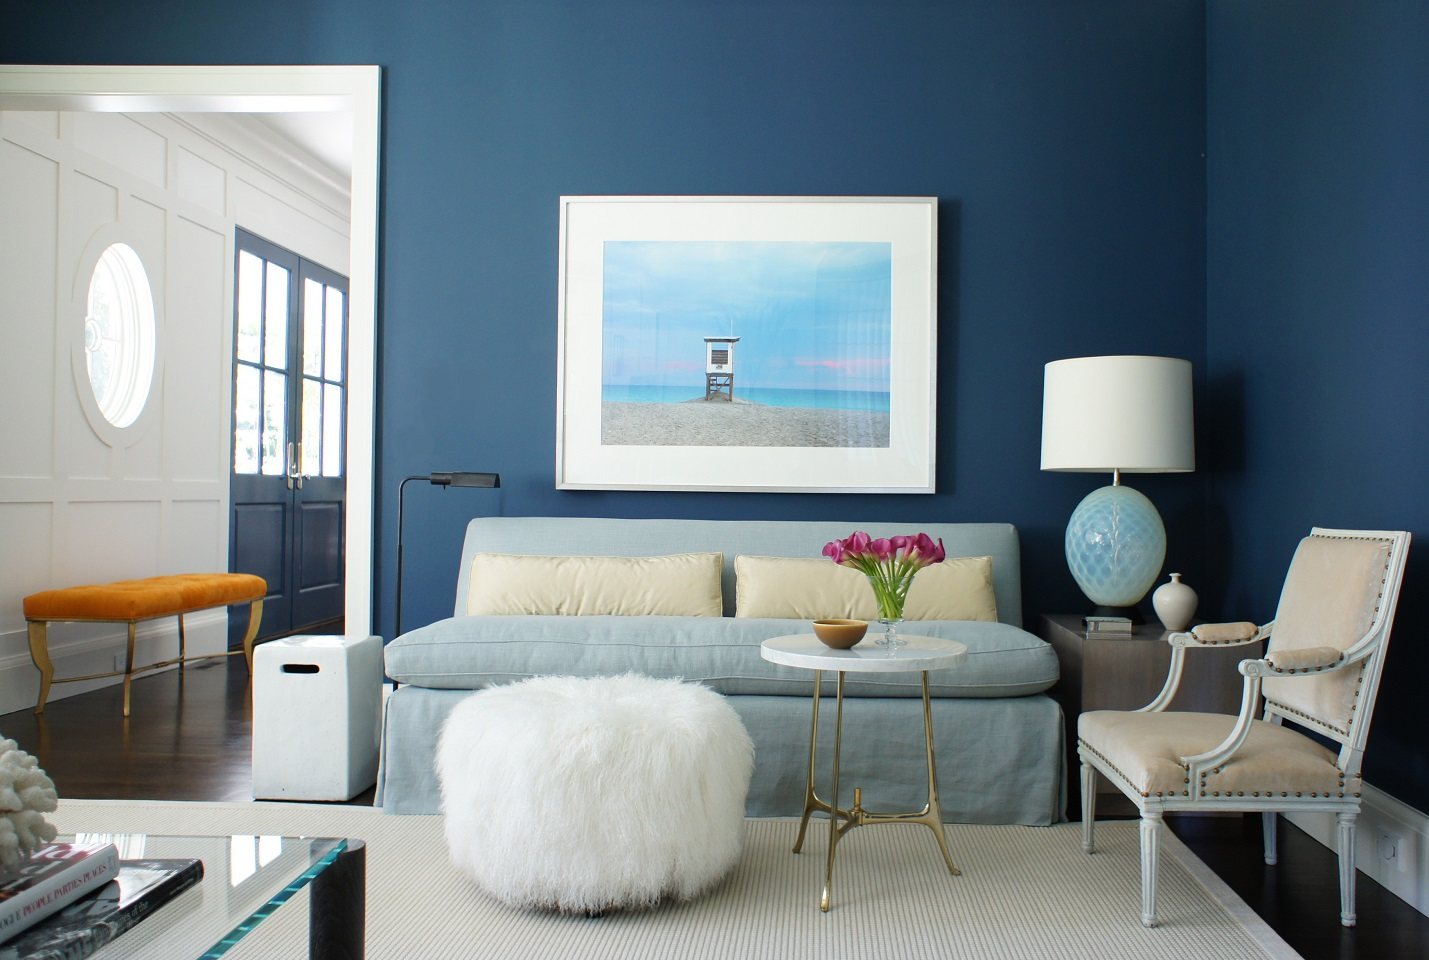 Best Art For Living Room: Ideas For Blue Painted Accent Walls